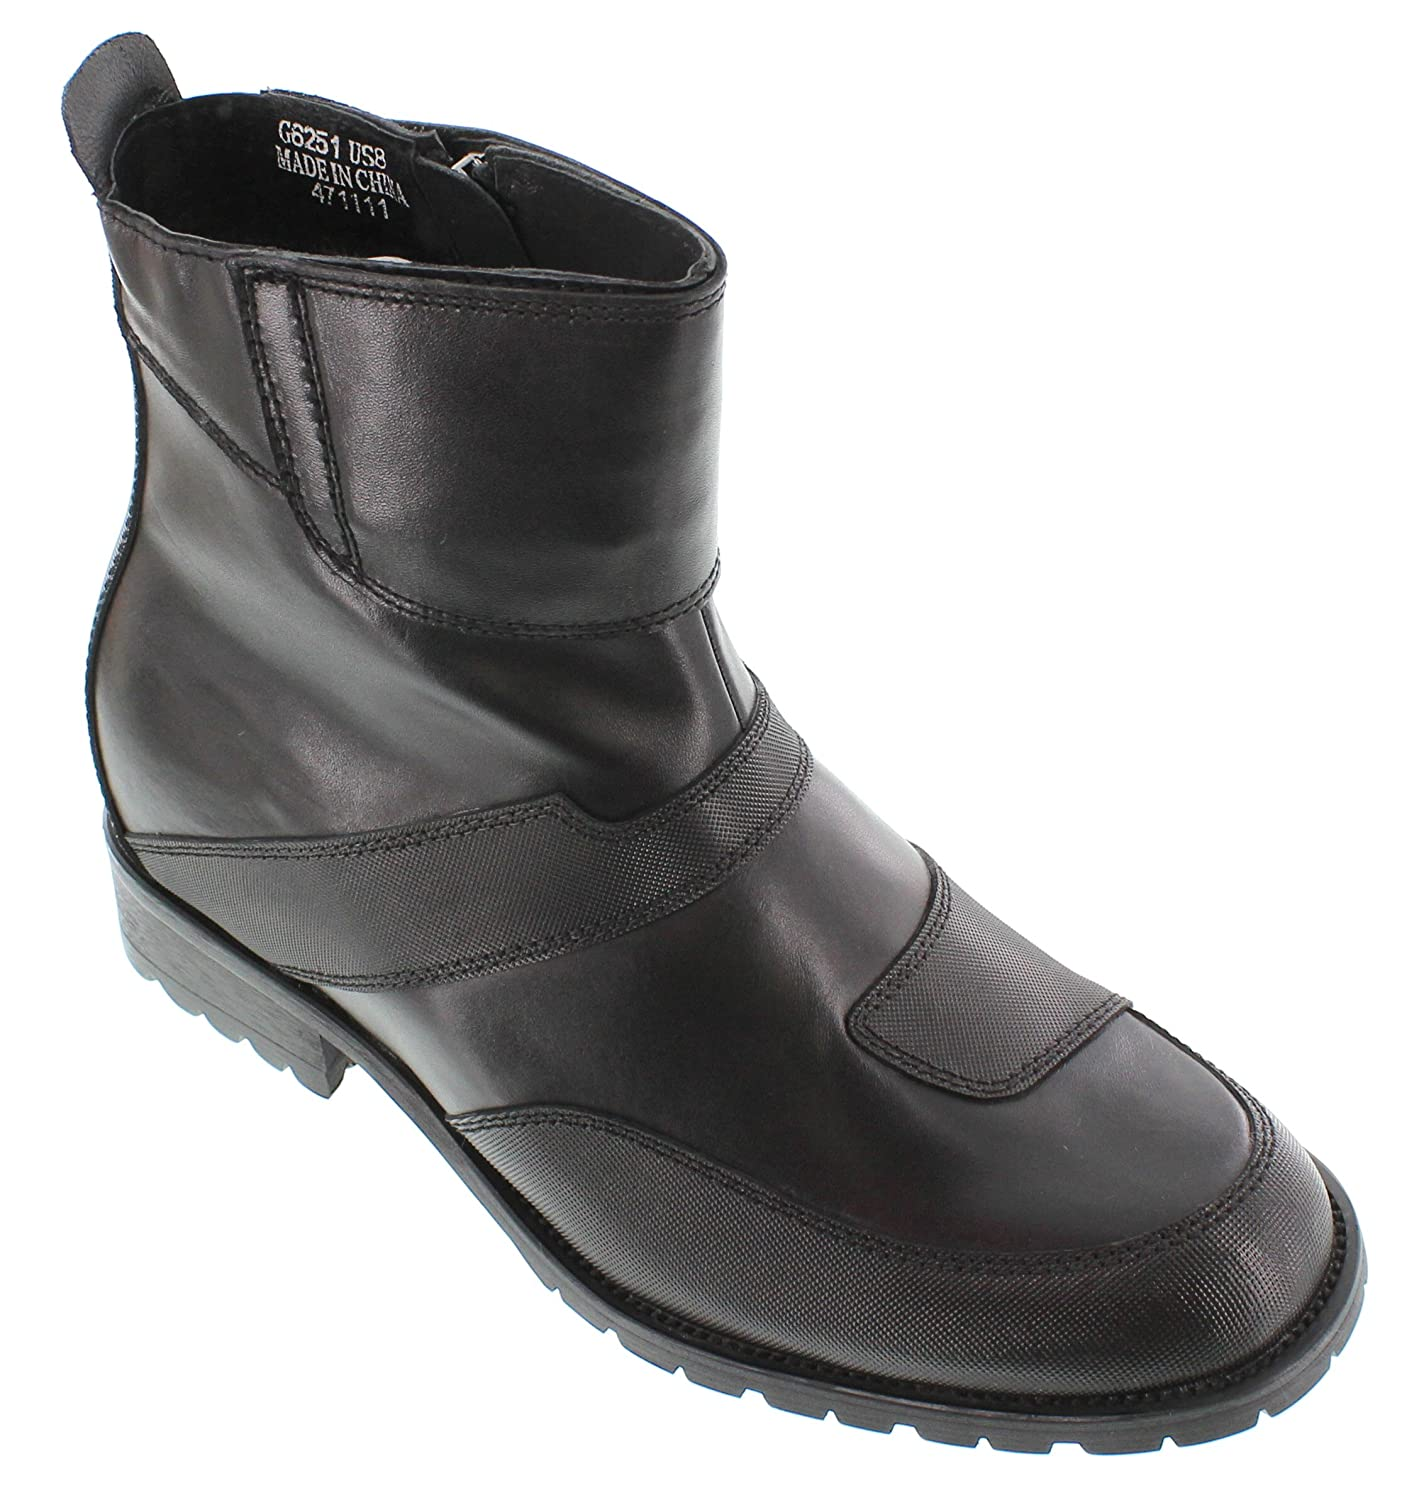 CALTO G6252-3.3 Inches Elevator Height Increase Black Zipper High Top Boots